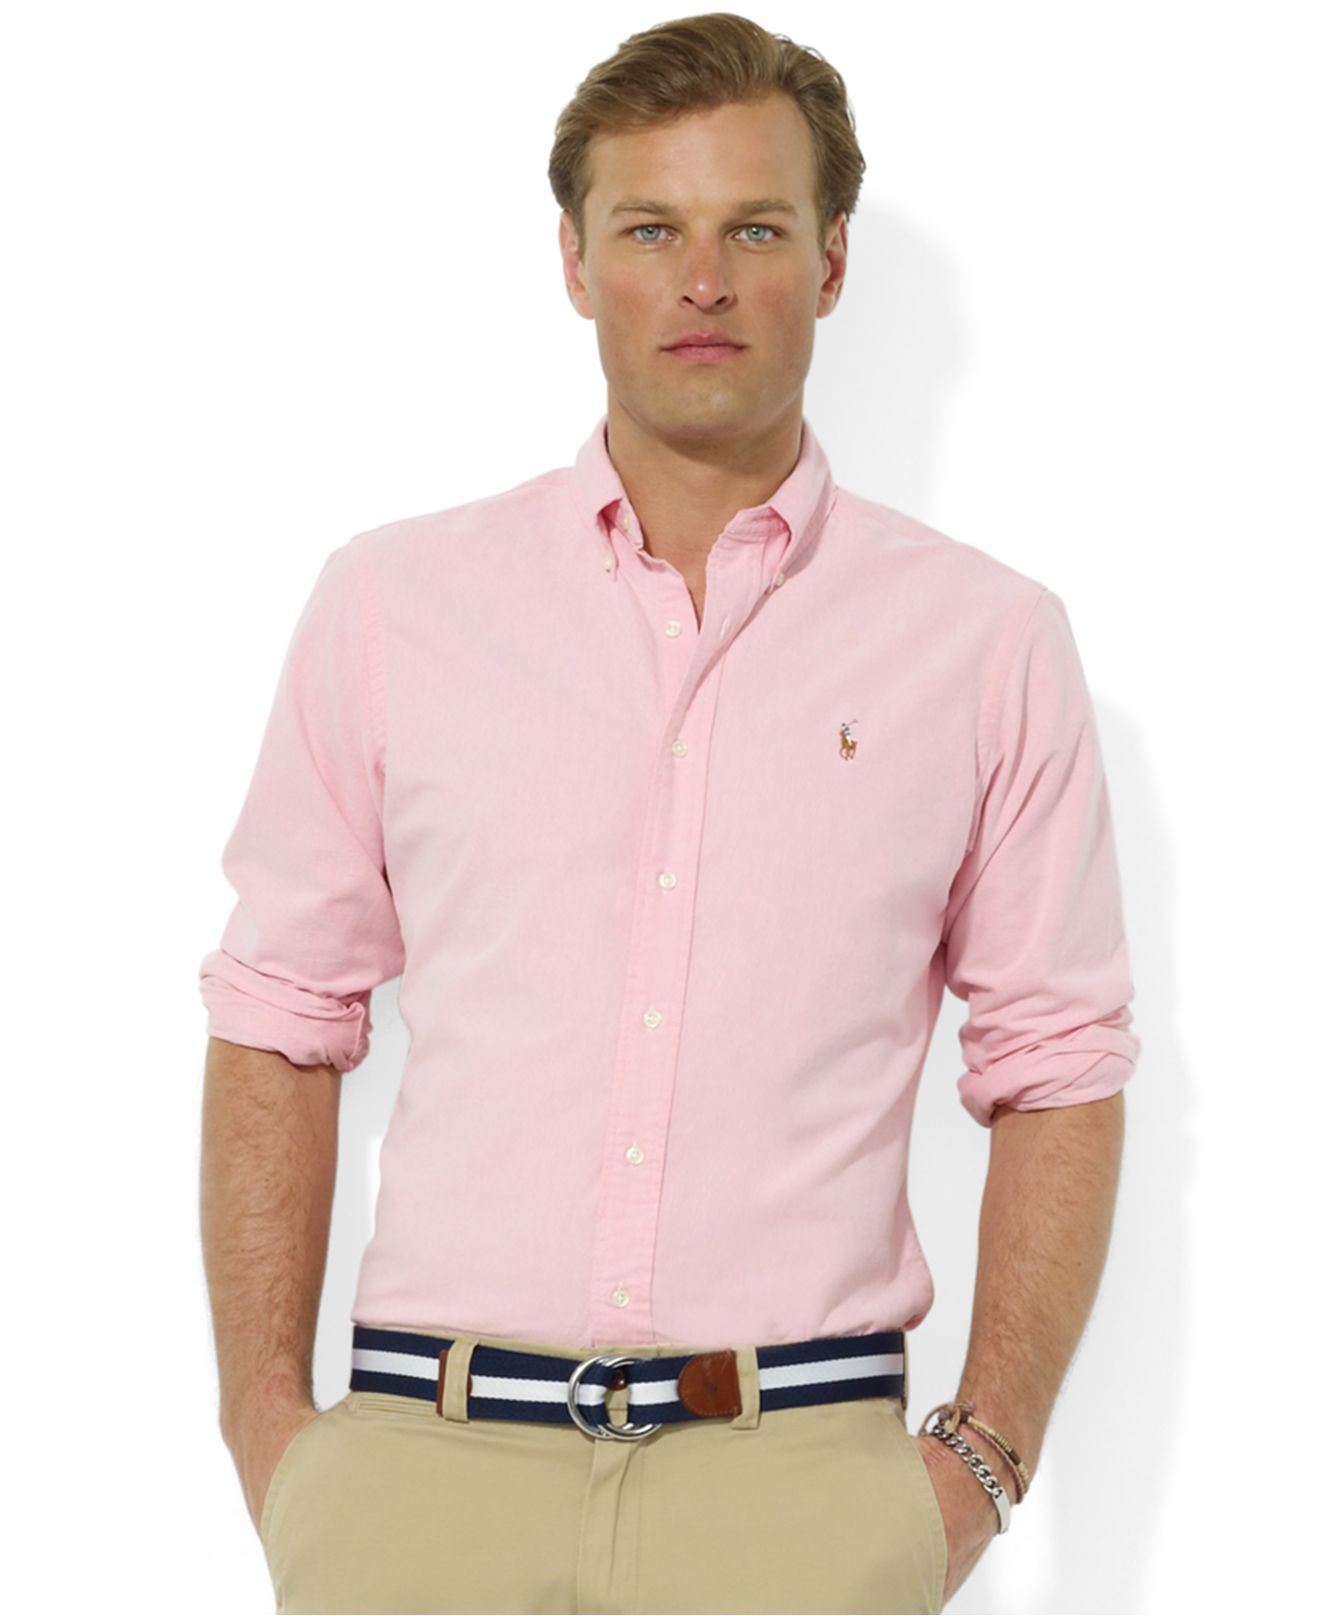 204a21ff ... australia lyst polo ralph lauren core classic fit oxford shirt in pink  for men c81ce 39176